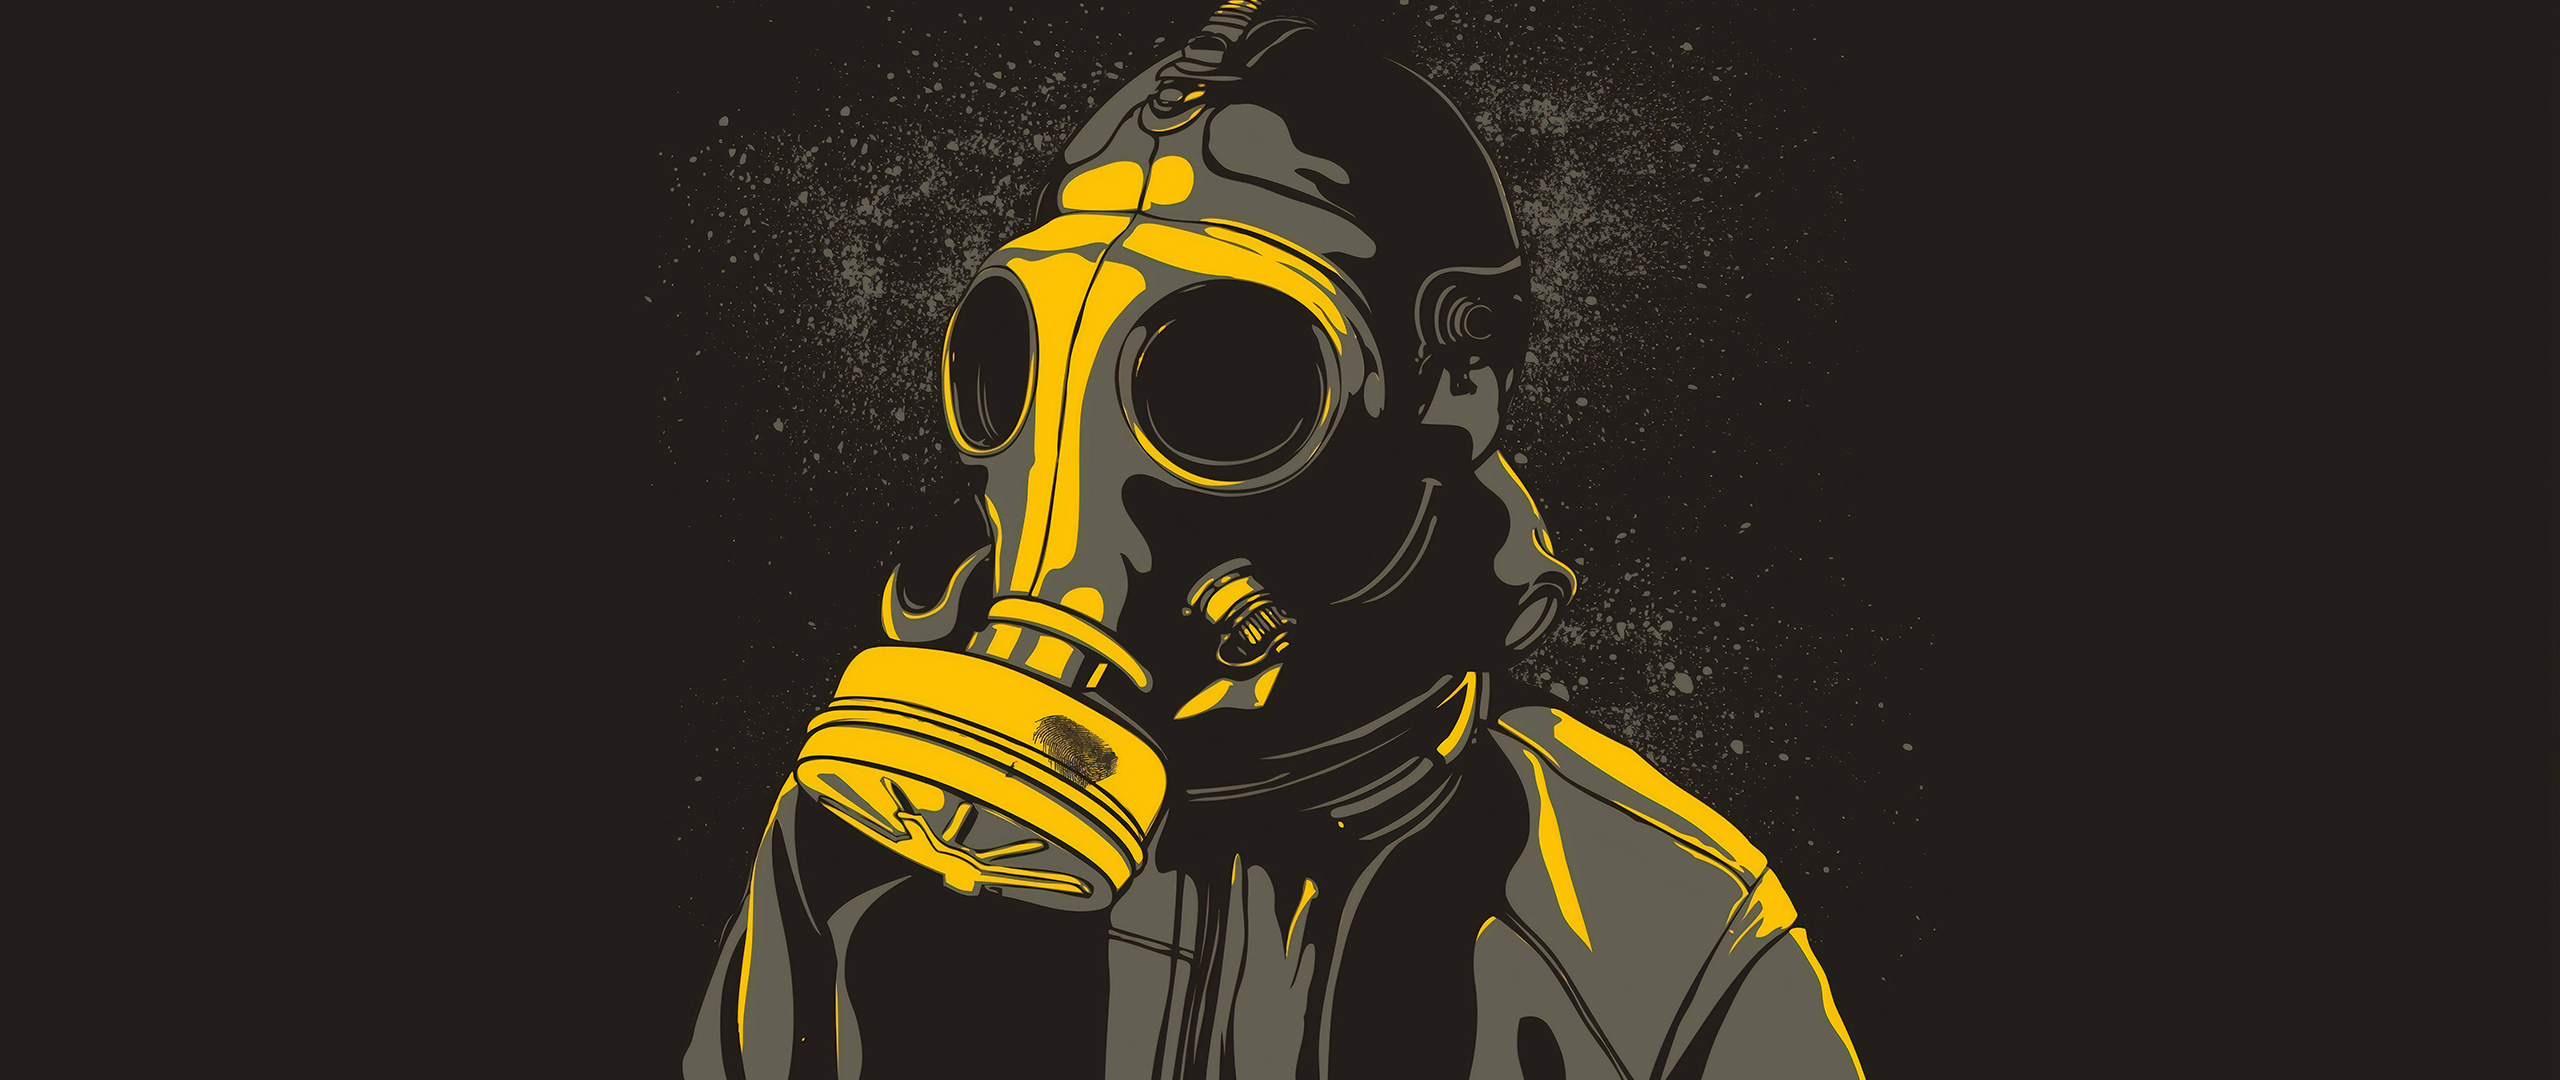 gas-mask-guy-vt.jpg